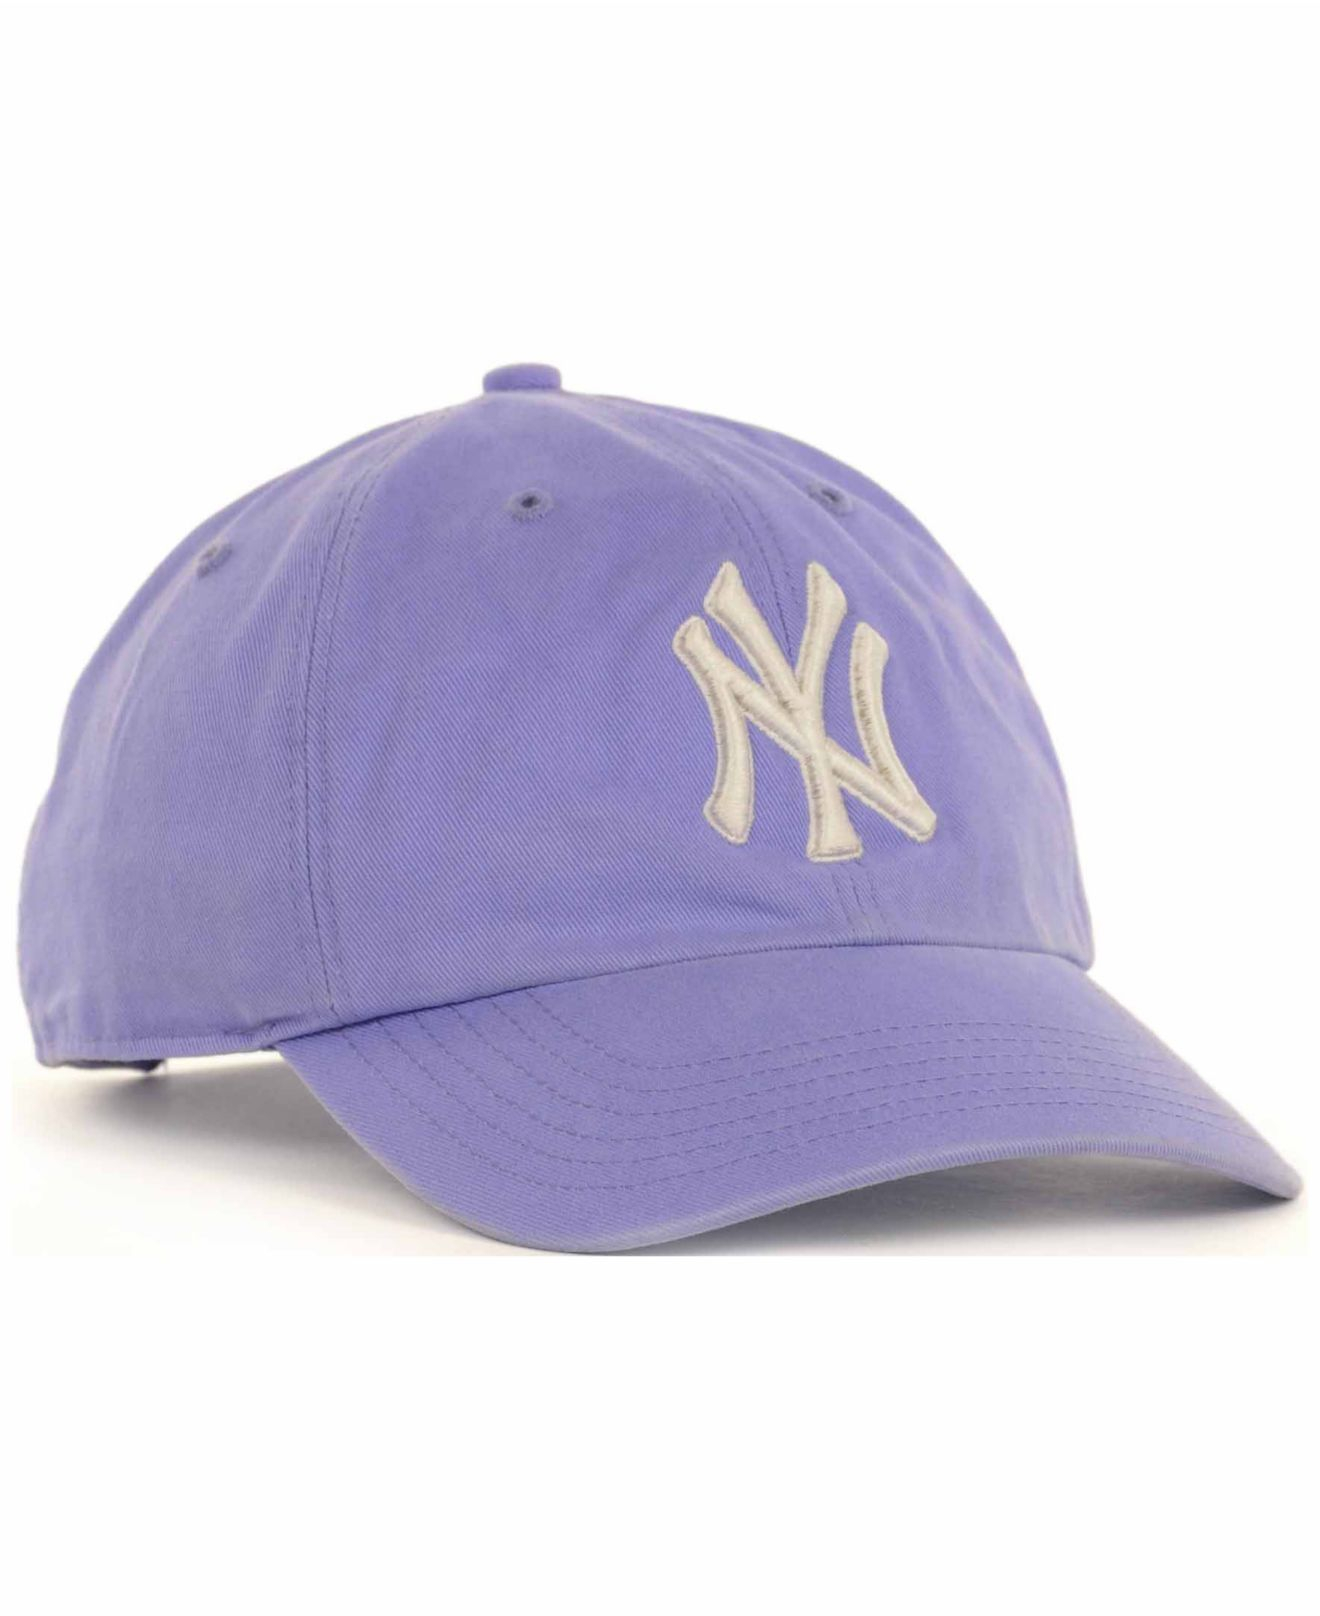 promo code 2c267 6cf4c ... shopping italy 47 brand new york yankees toddler bruiser adjustable hat  navy blue gray lyst 47